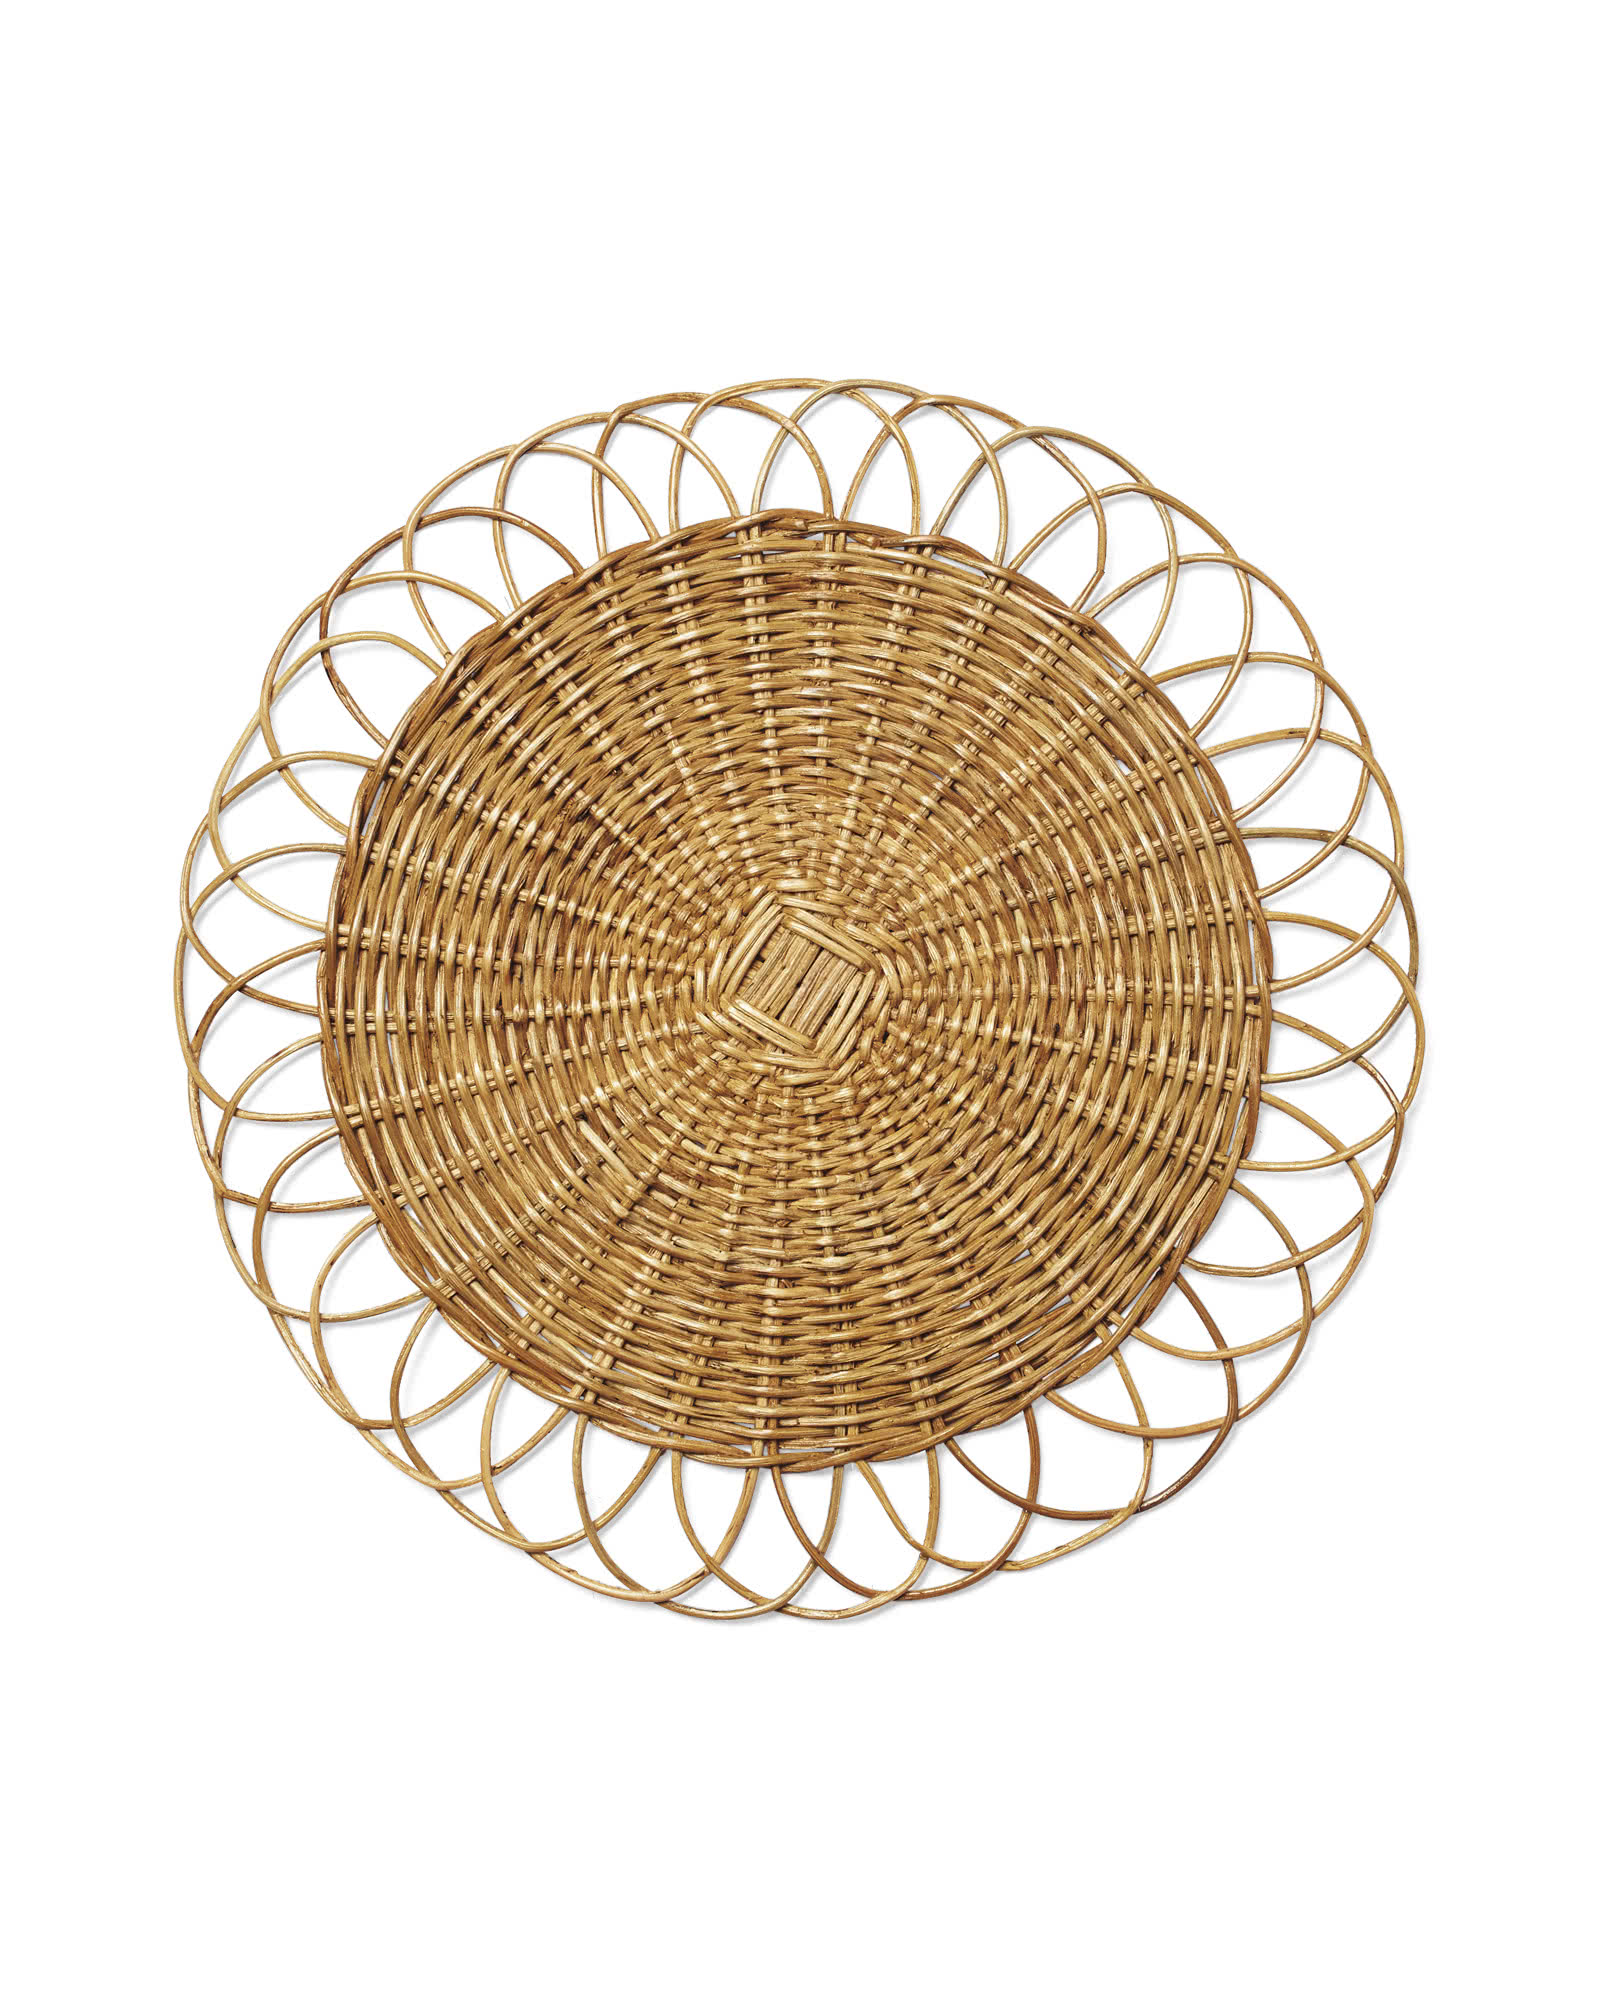 PR_Loop_Rattan_Placemat_Circle_MV_Crop_SH.jpg